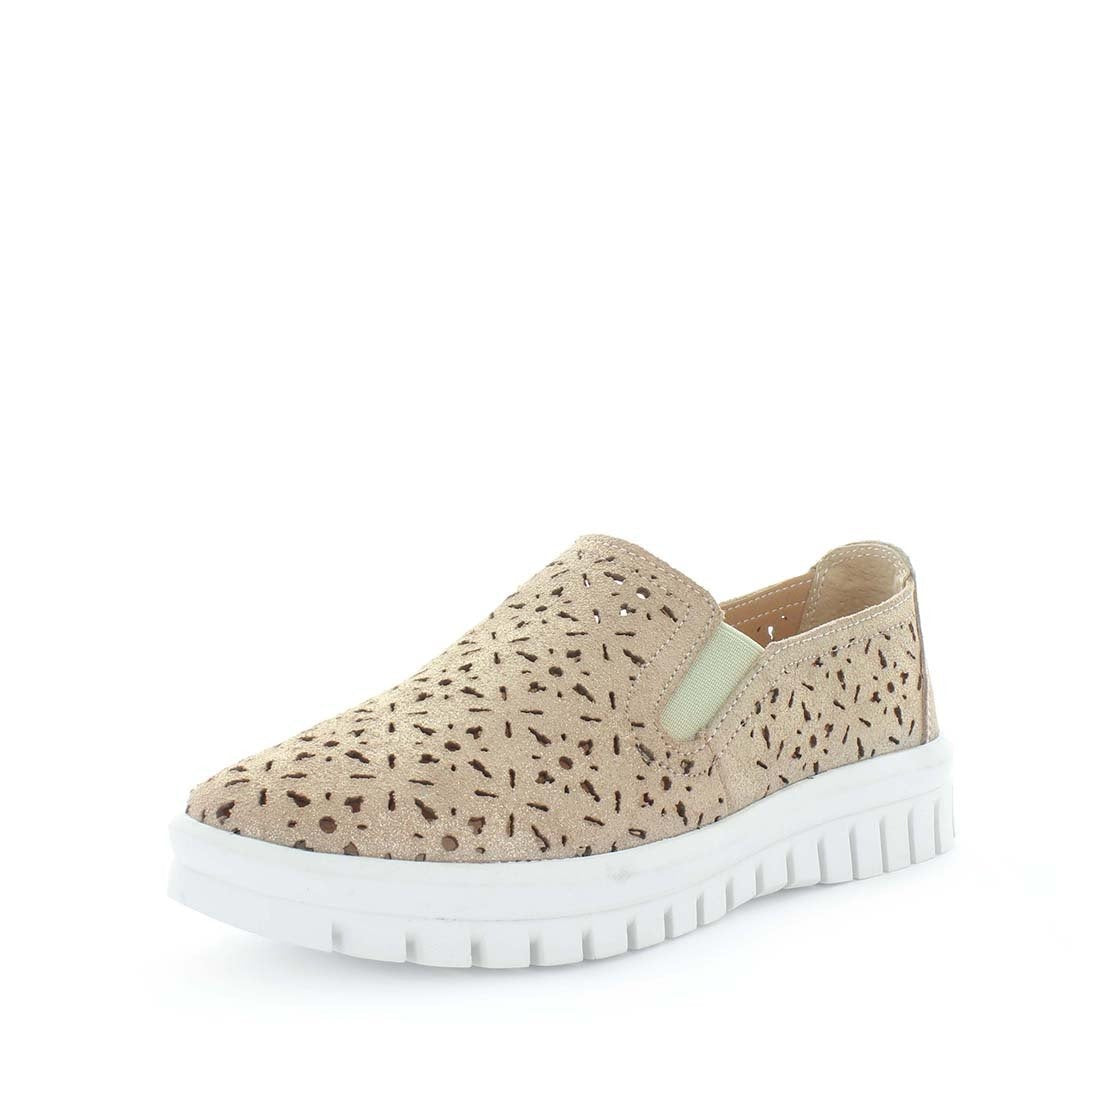 womens comfort flats, womens shoes, just bee, ishoes, carlotta, just bee